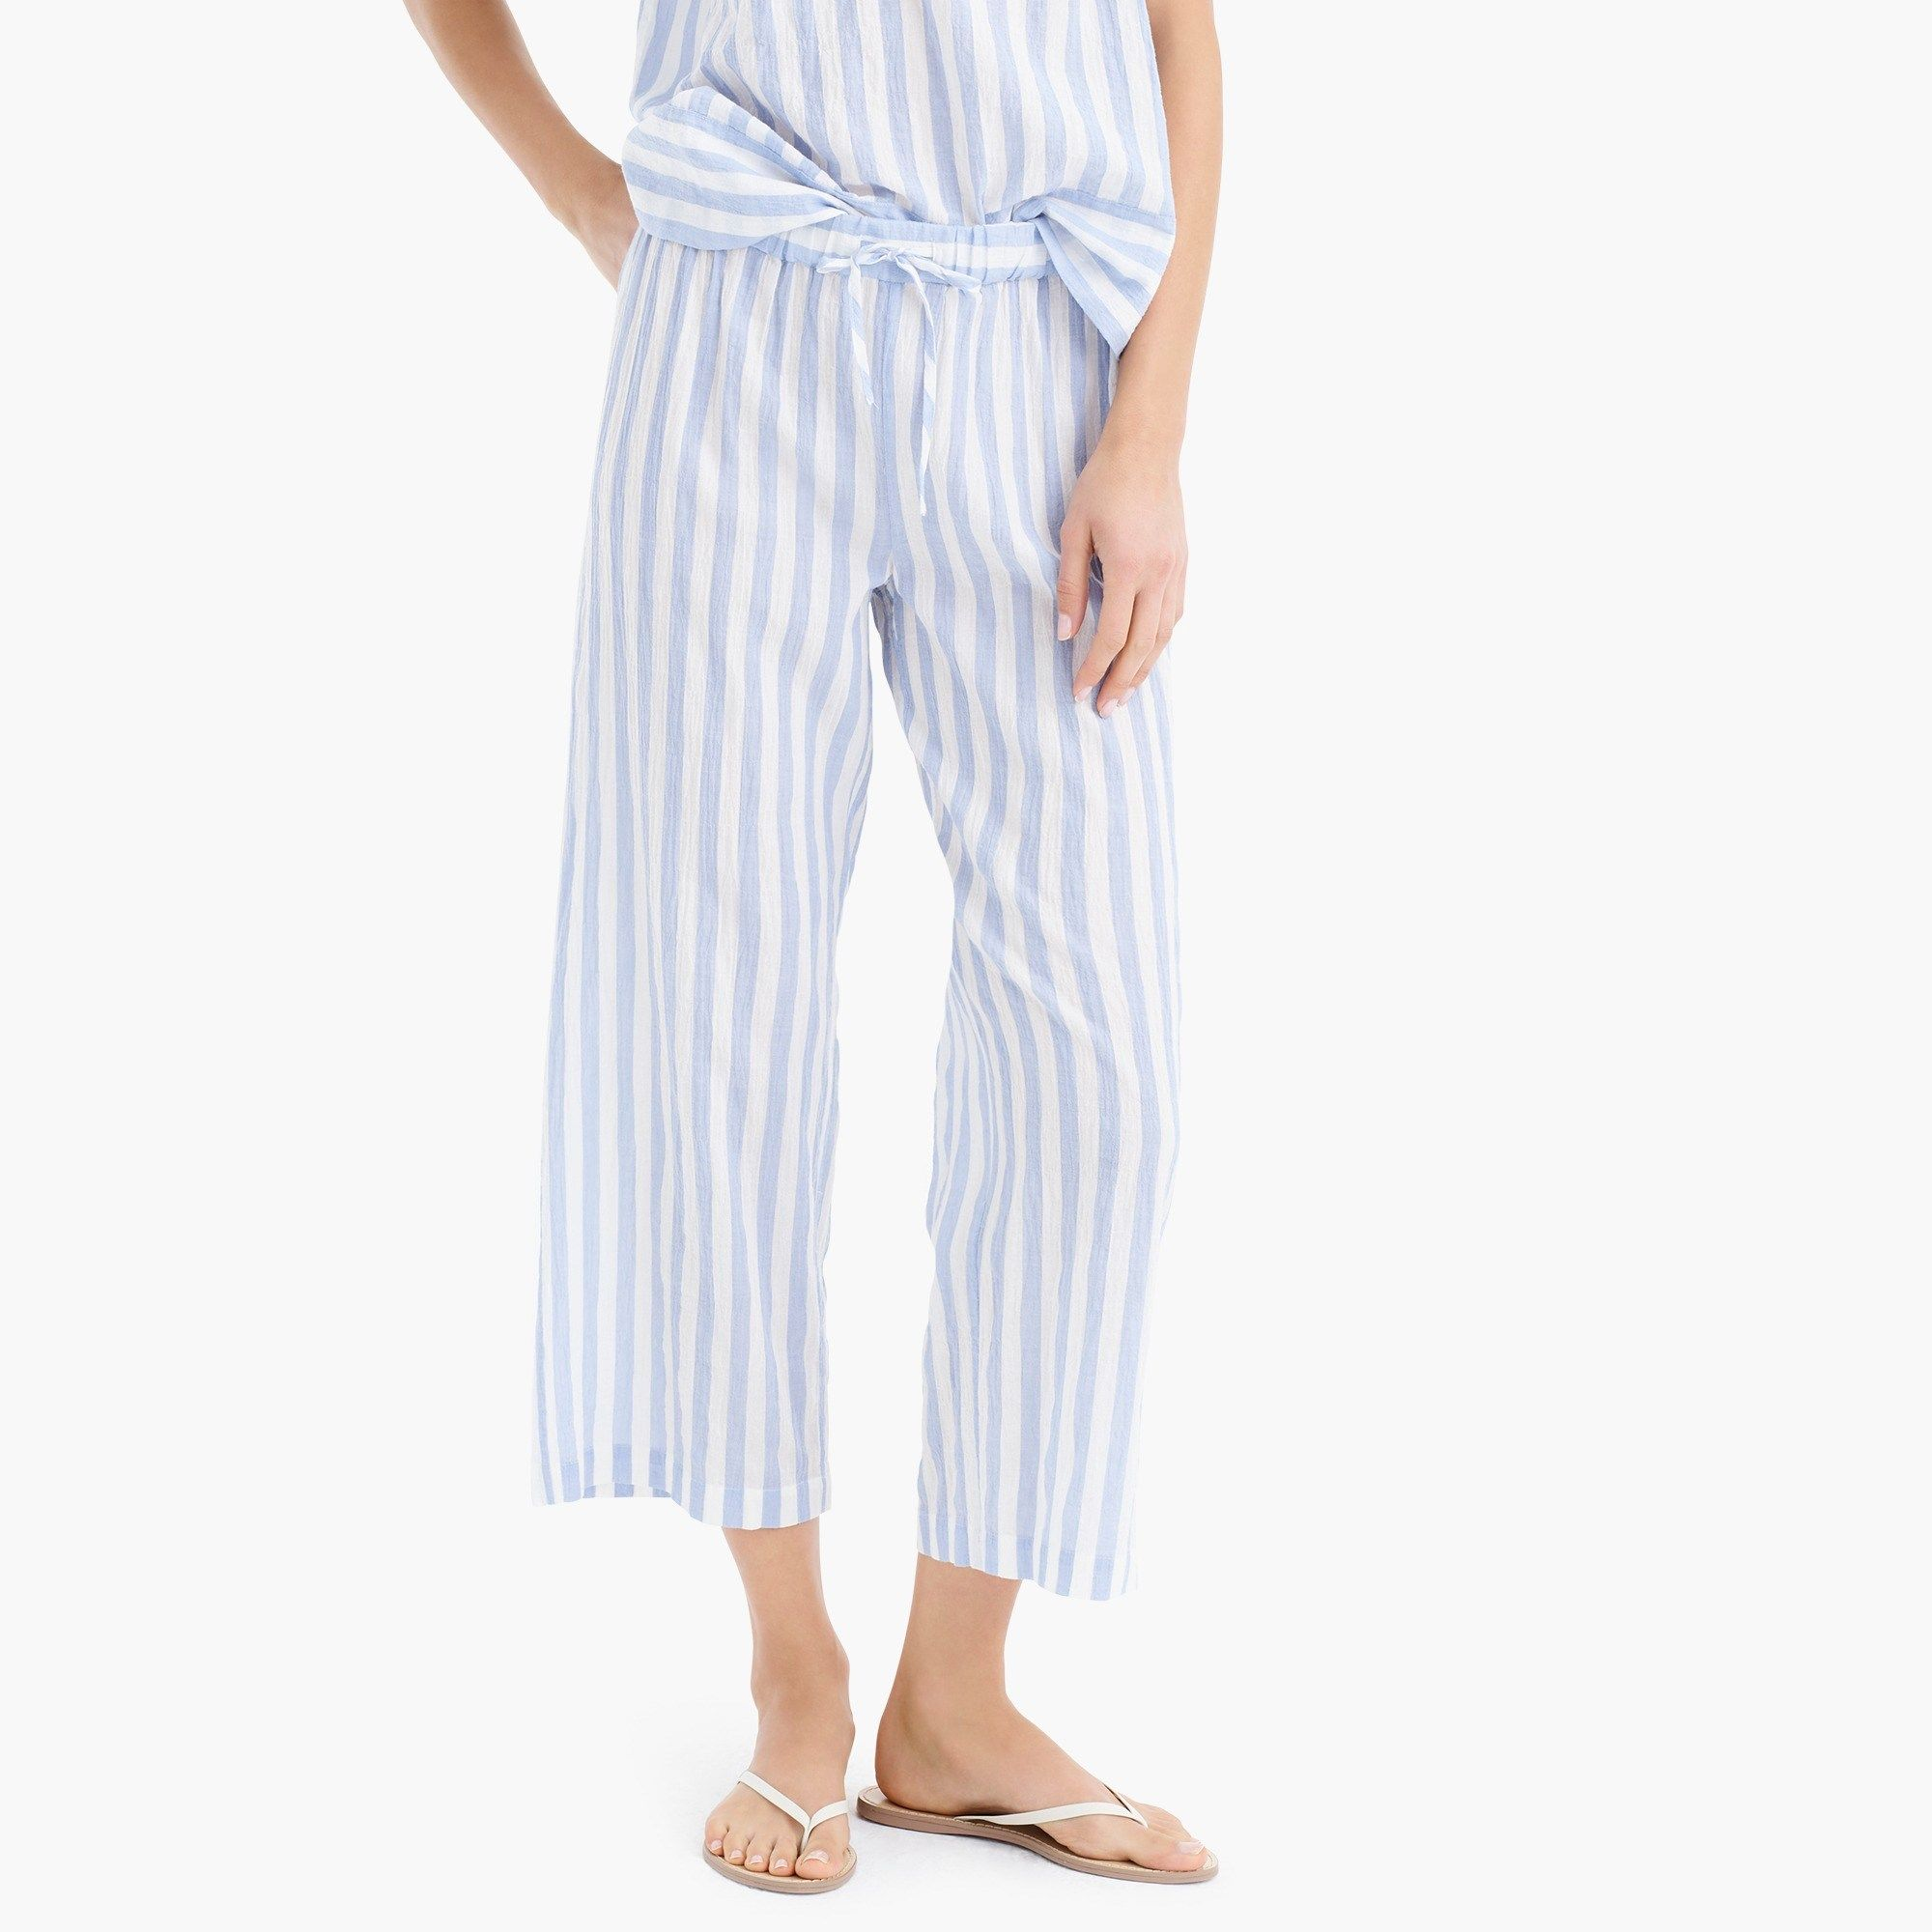 f1357bc75d Love these striped beach pants from J. Crew! | RESORT SHOP in 2019 ...